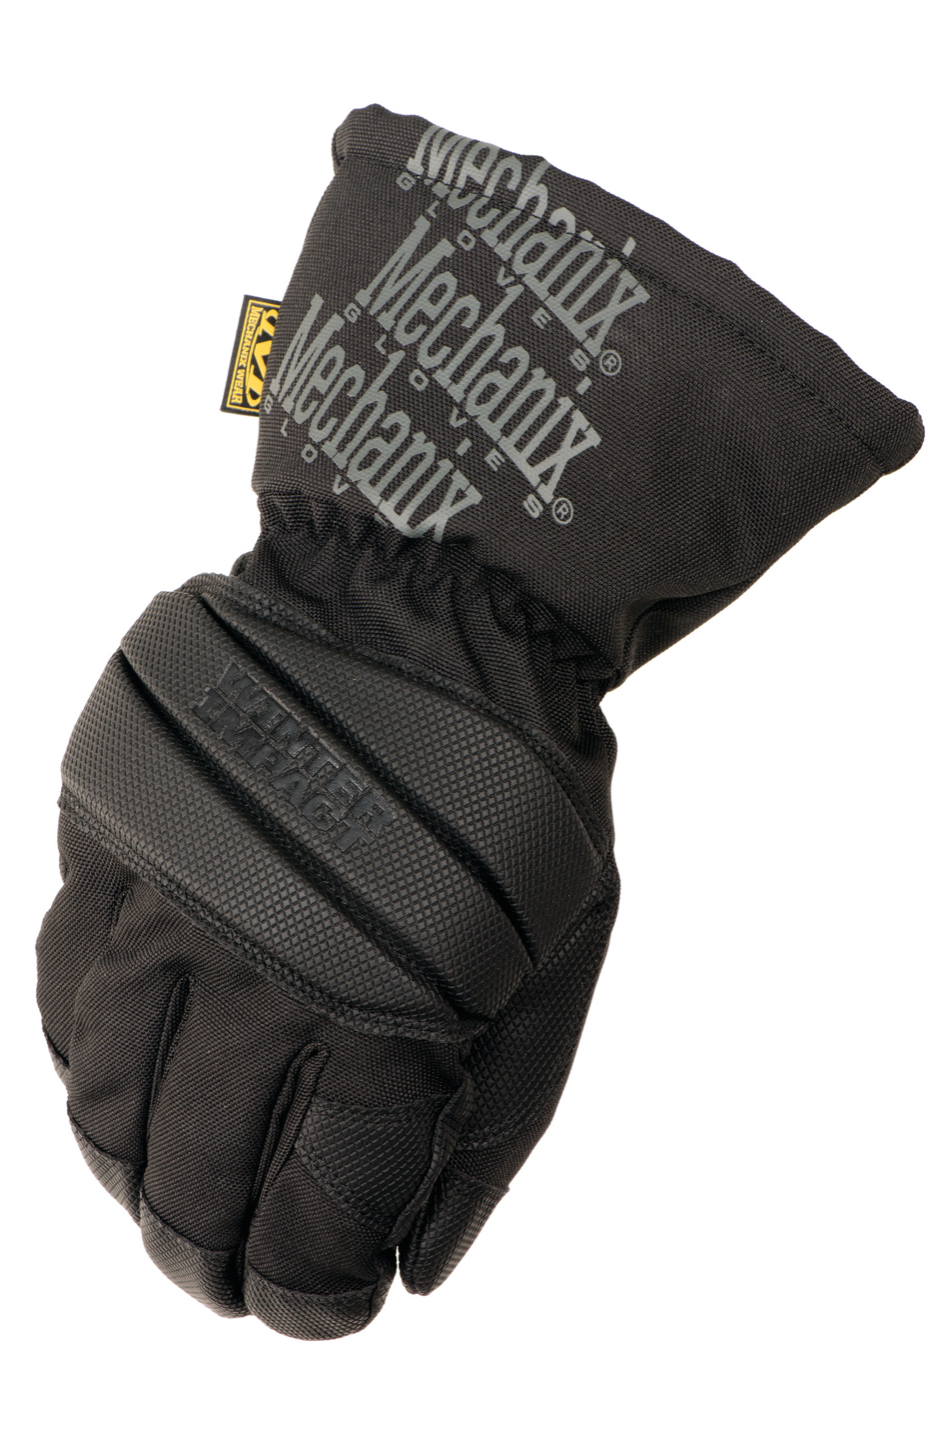 Mechanix Wear MCW-WI-009 Gloves, Shop, Winter Impact Gen 2, Gauntlet Style, Insulated, Black / Gray, Medium, Pair